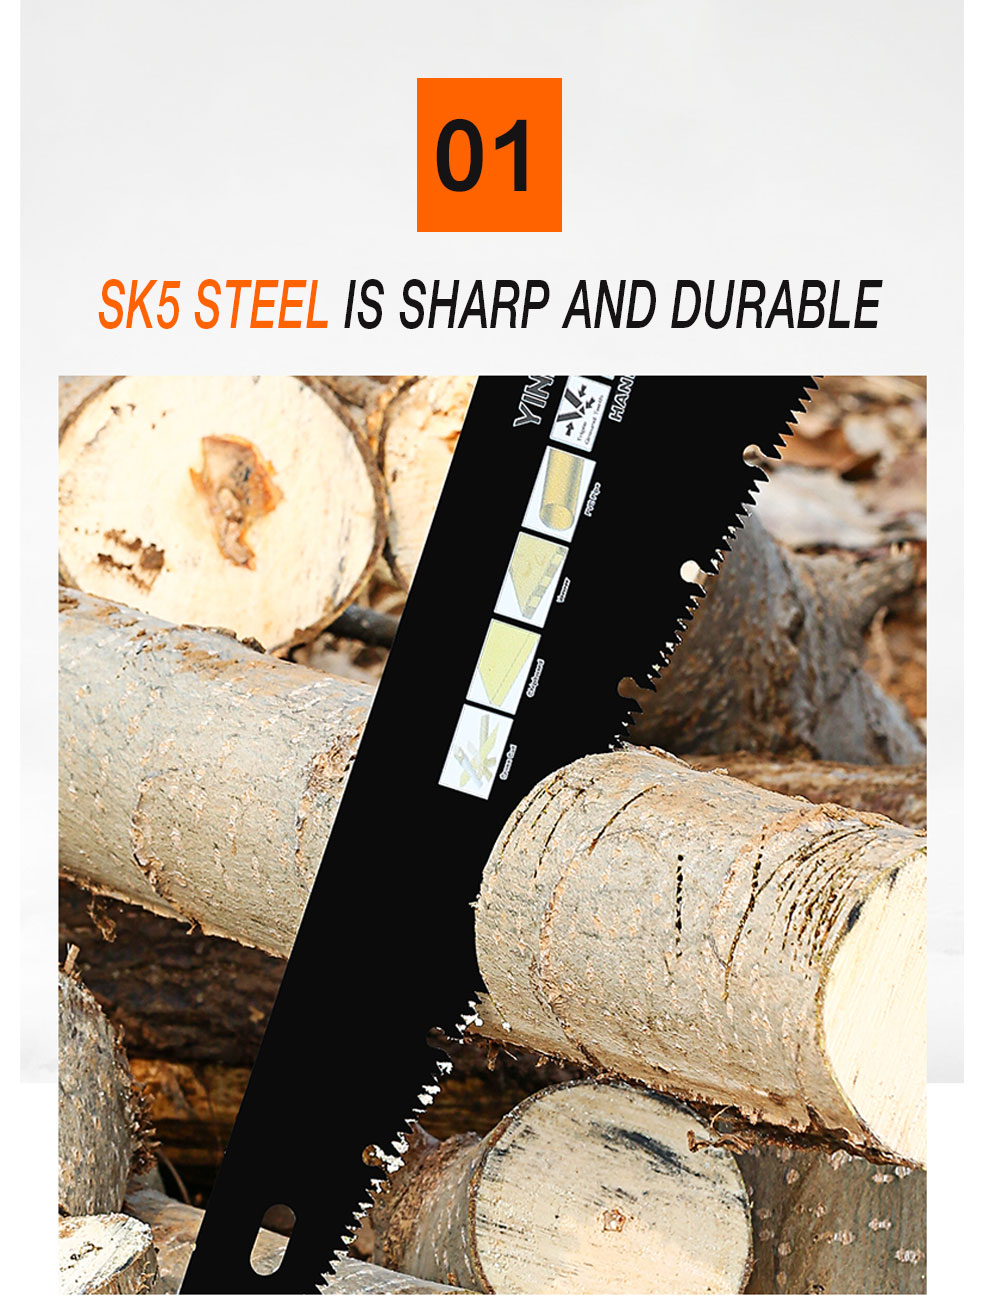 AI-ROAD handsaw SK5 Steel is sharp and durable